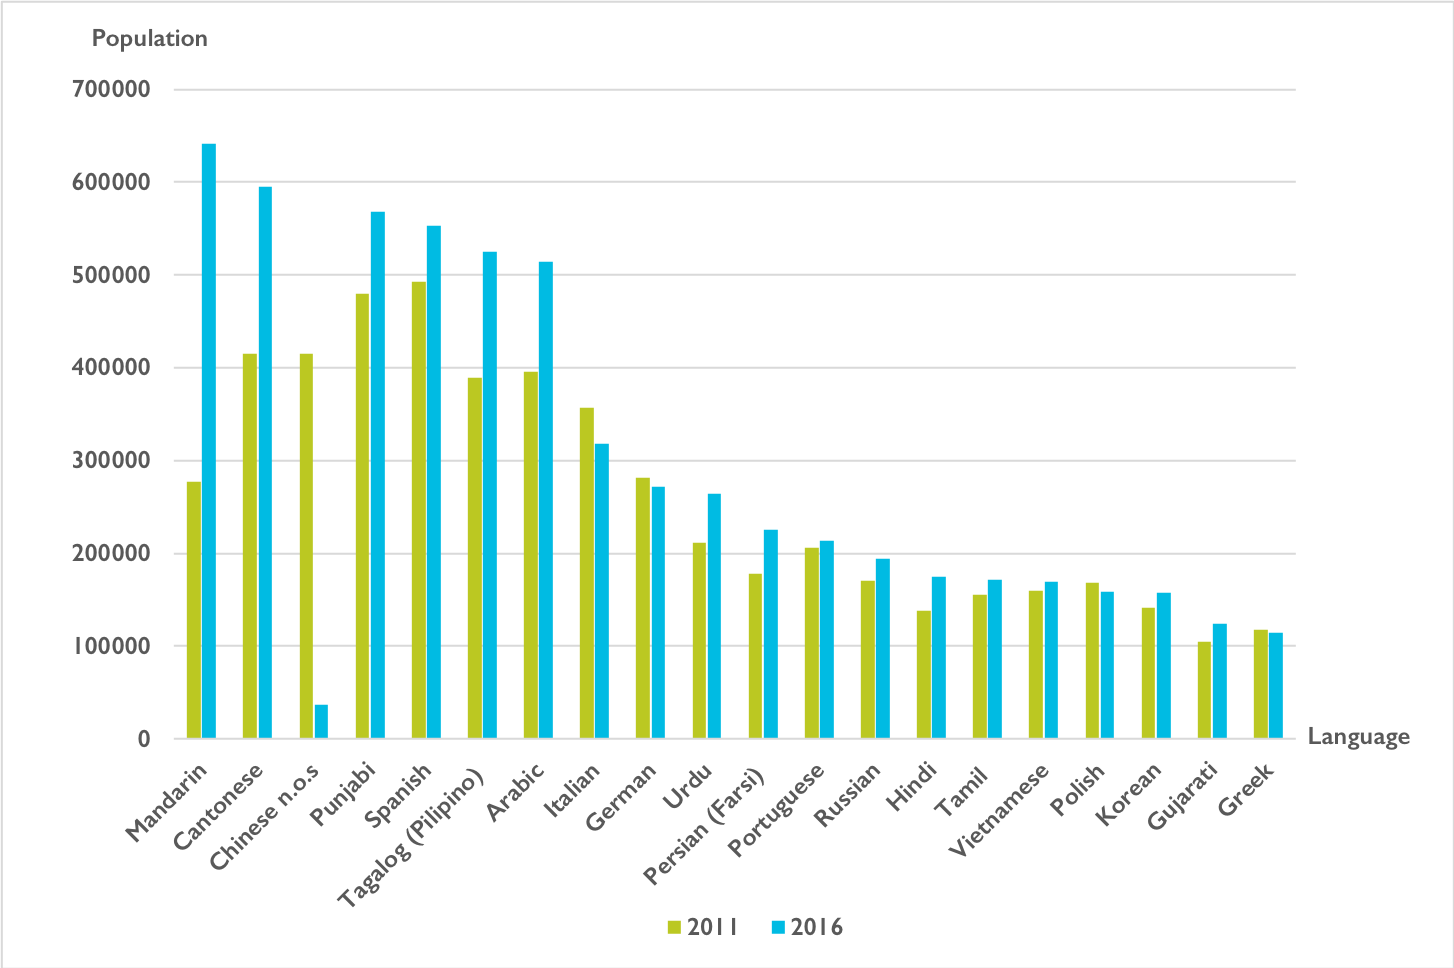 A graph showing the growth of heritage languages over the last five years. In 2011, the top languages are (from most growth to least growth): Spanish, Punjabi, Cantonese, Chinese, Arabic, Tagalog, Italian, German, Mandarin, Urdu, Portuguese, Farsi, Russian, Polish, Vietnamese, Tamil, Korean, Greek and Gujarati. In 2016, the top languages are (from most growth to least growth): Mandarin, Cantonese, Punjabi, Spanish, Tagalog, Arabic, Italian, German, Urdu, Farsi, Portuguese, Russia, Hindi, Tamil, Vietnamese, Polish, Korean, Gujarati, Greek and Chinese.